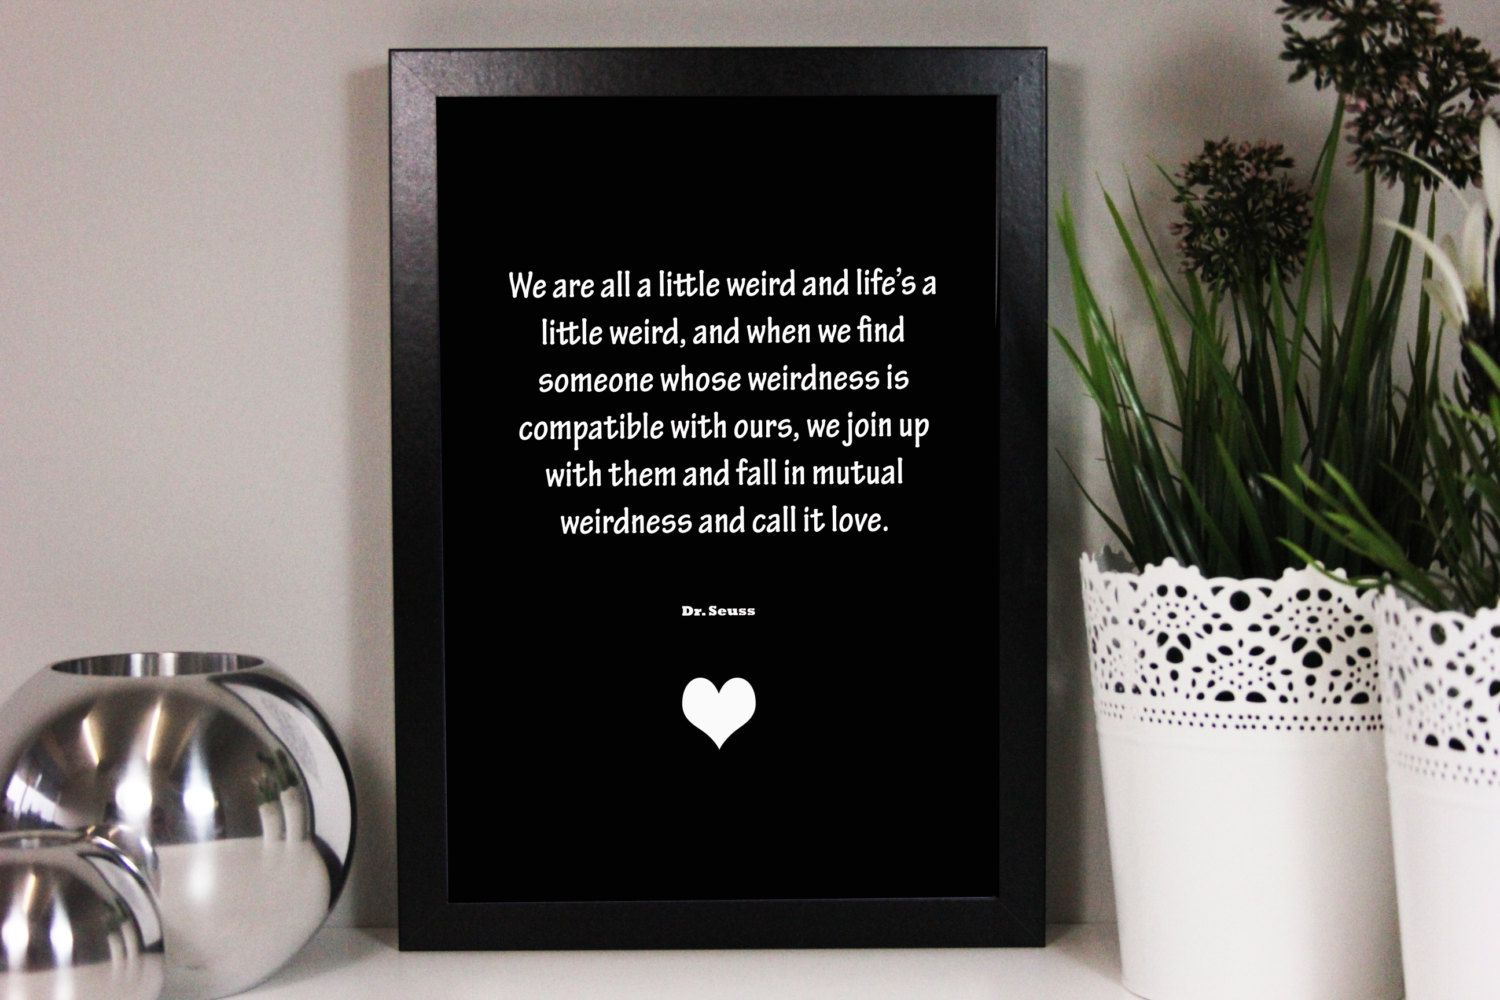 How to write wedding vows and samples young at heart wedding vows inspired by dr seuss junglespirit Image collections